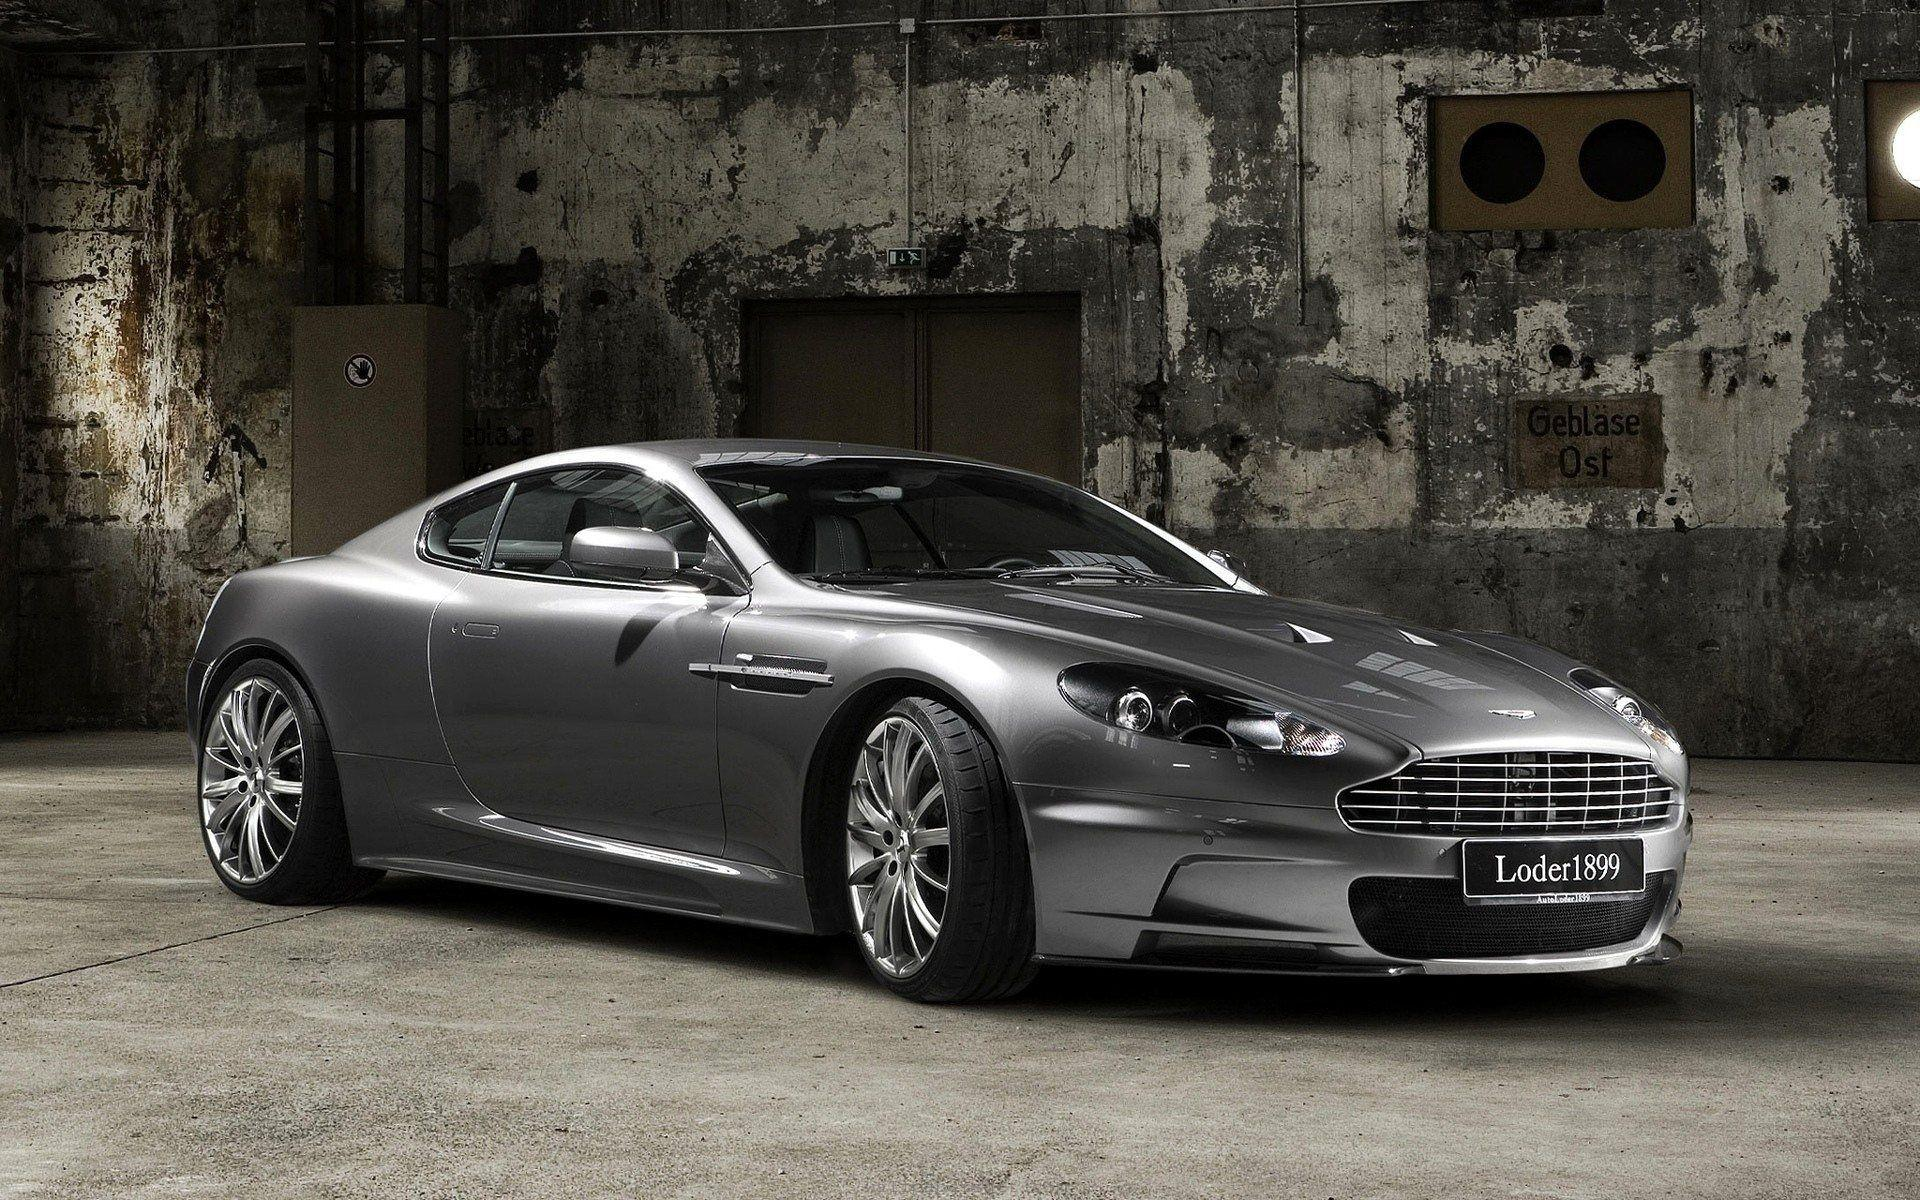 aston martin db9 photos informations articles. Black Bedroom Furniture Sets. Home Design Ideas